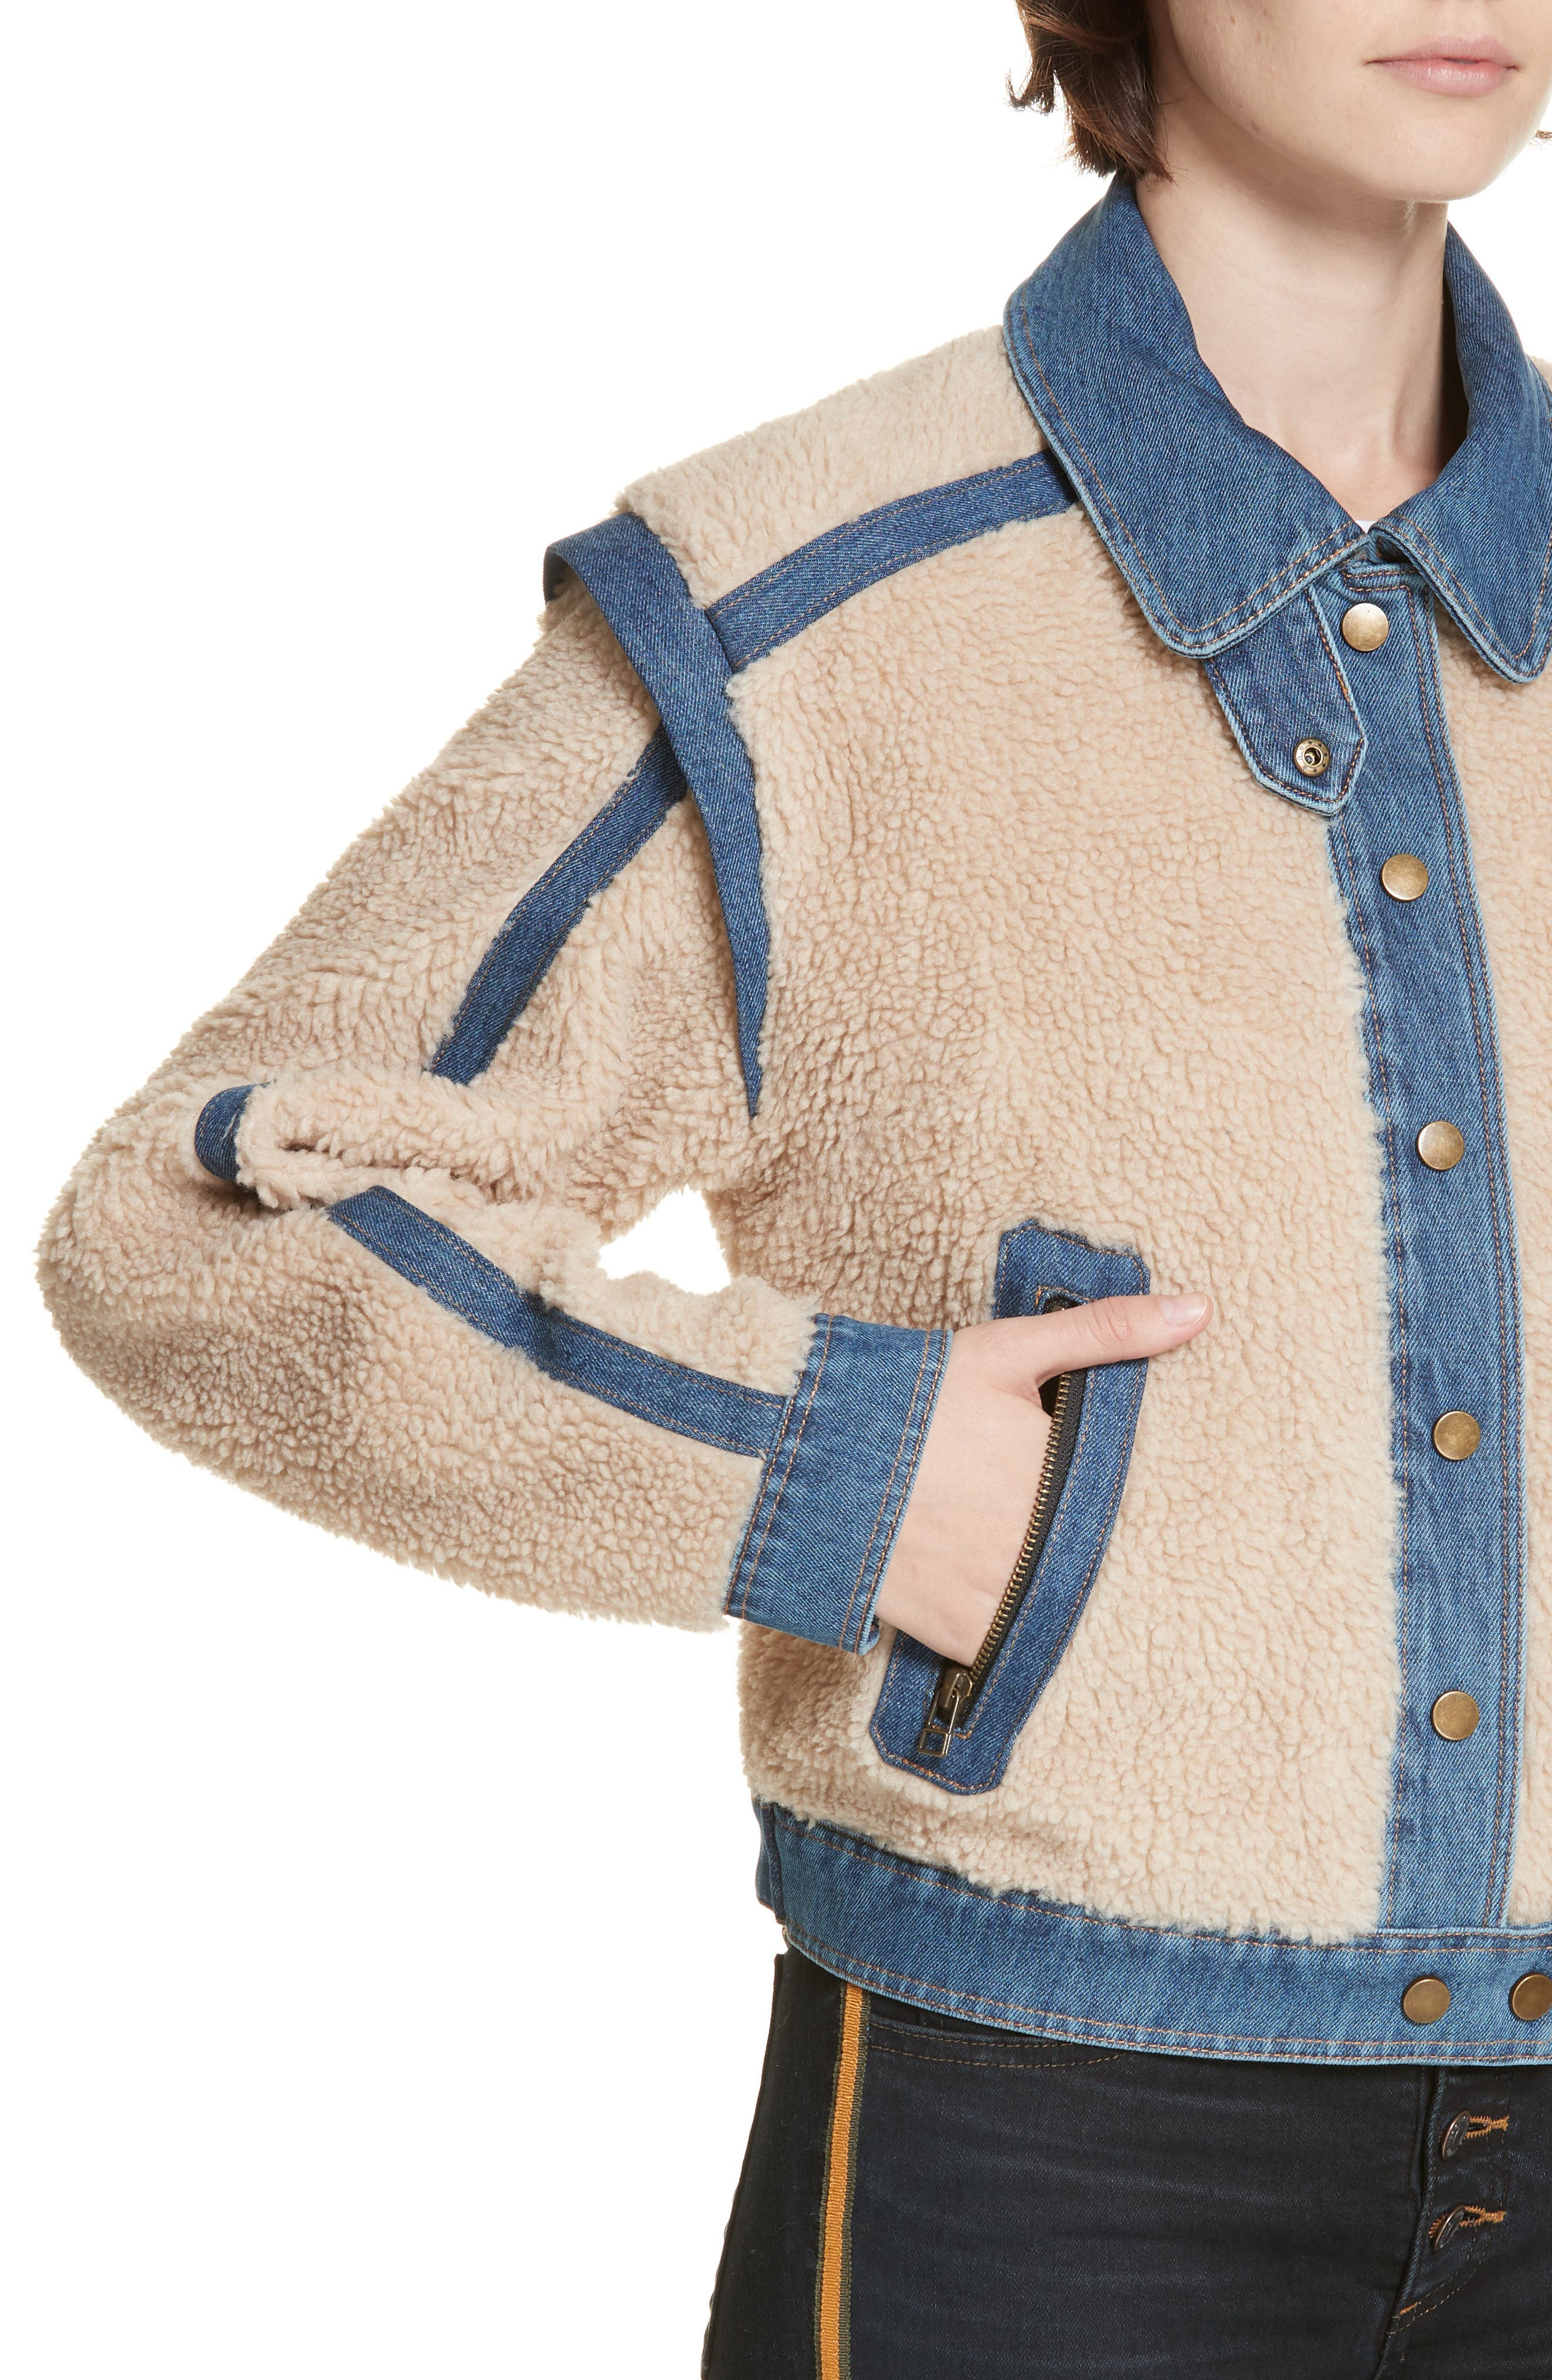 Potter Fleece & Denim Jacket,                             Alternate thumbnail 4, color,                             OATMEAL